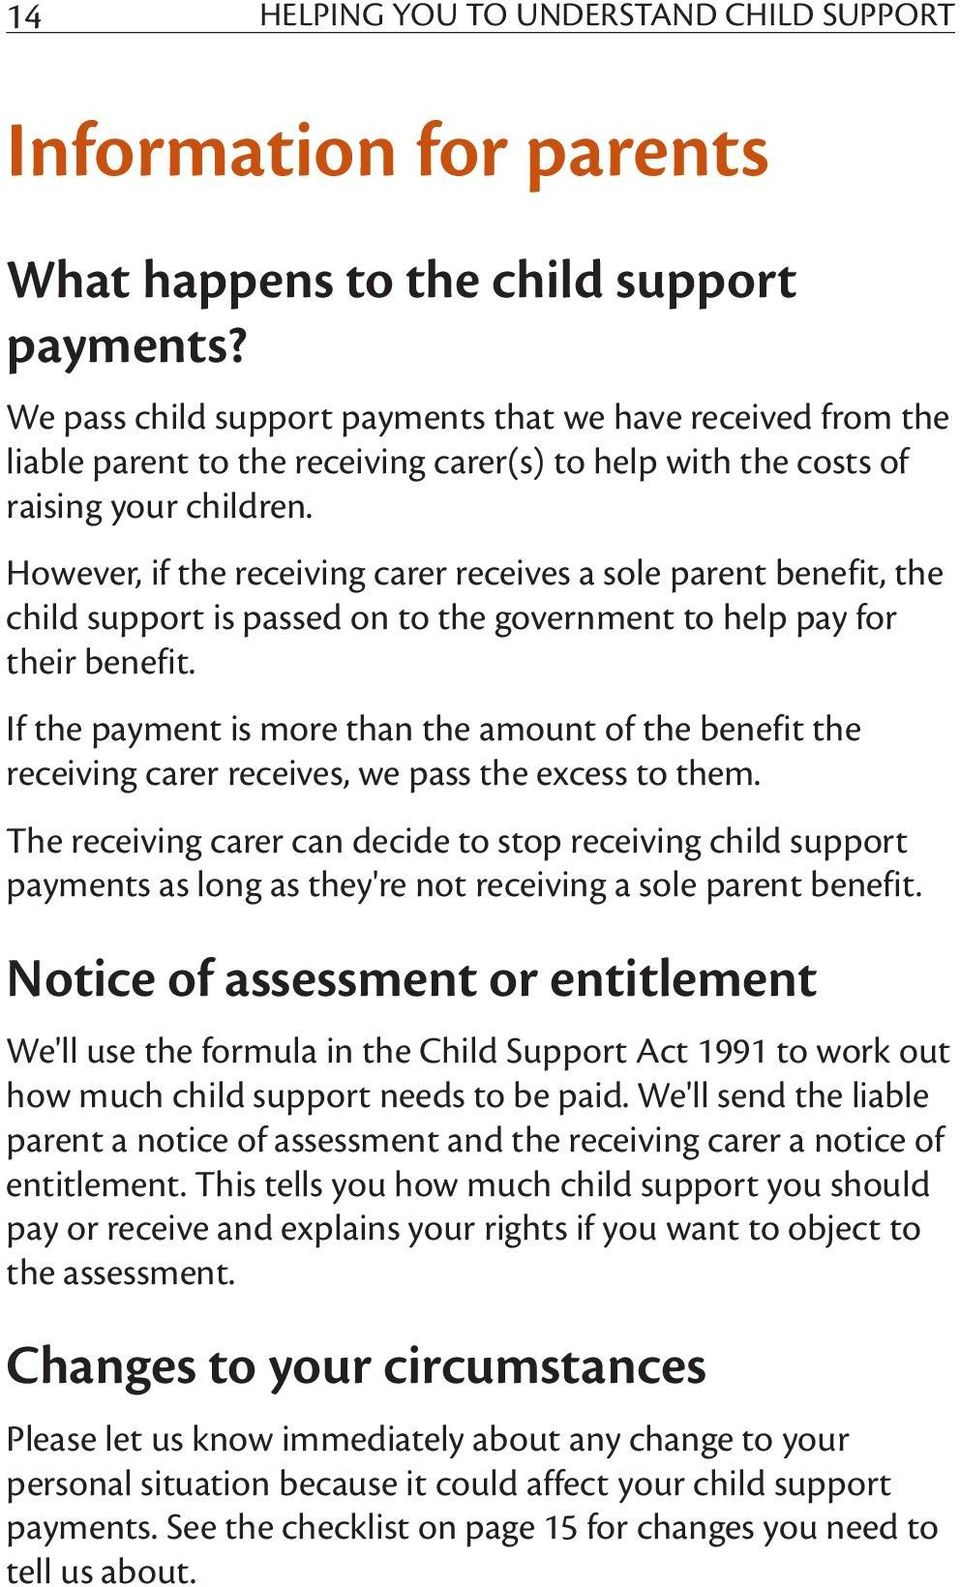 However, if the receiving carer receives a sole parent benefit, the child support is passed on to the government to help pay for their benefit.